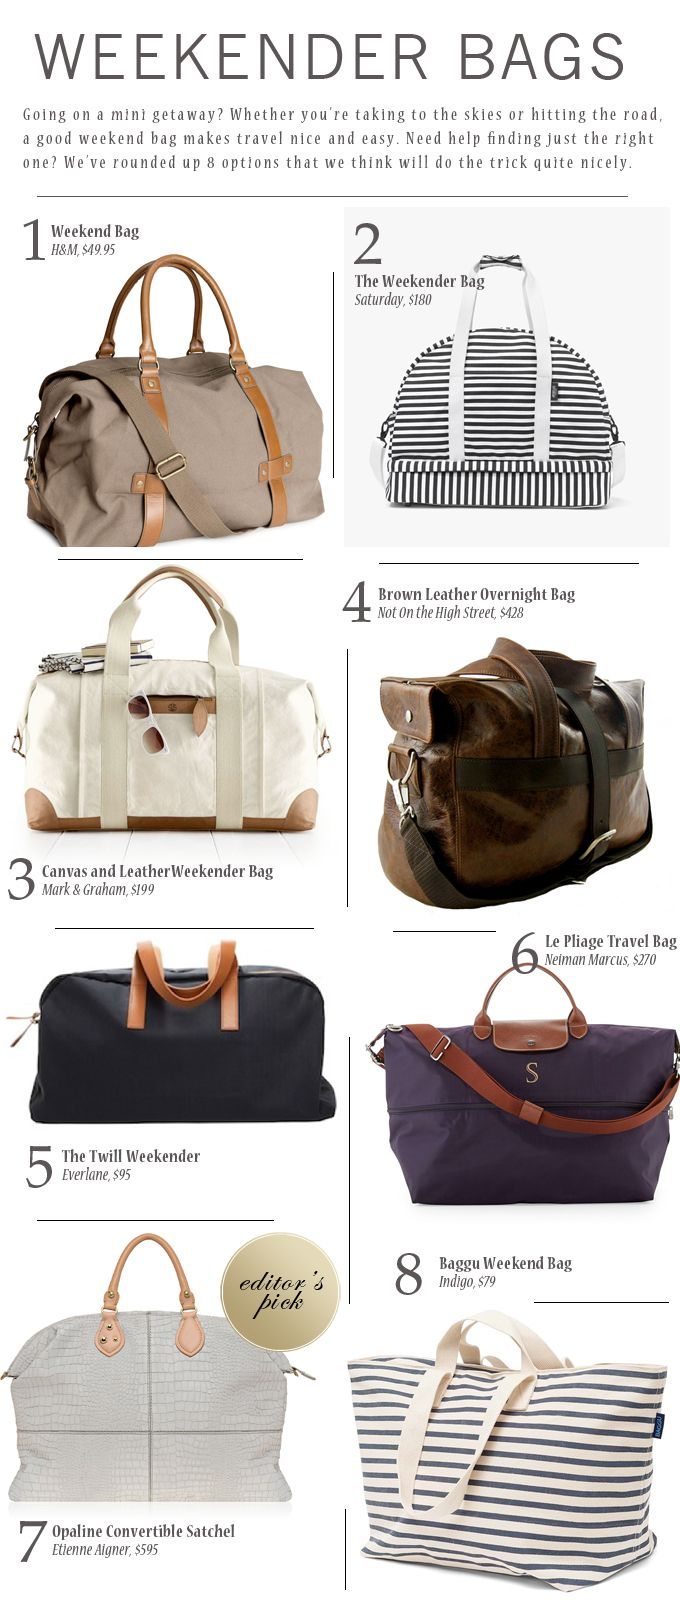 A Short Getaway Means You Can Leave That Suitcase At Home And Travel With Something Bit Smaller Like Weekend Bag Here Are 8 Options To Consider